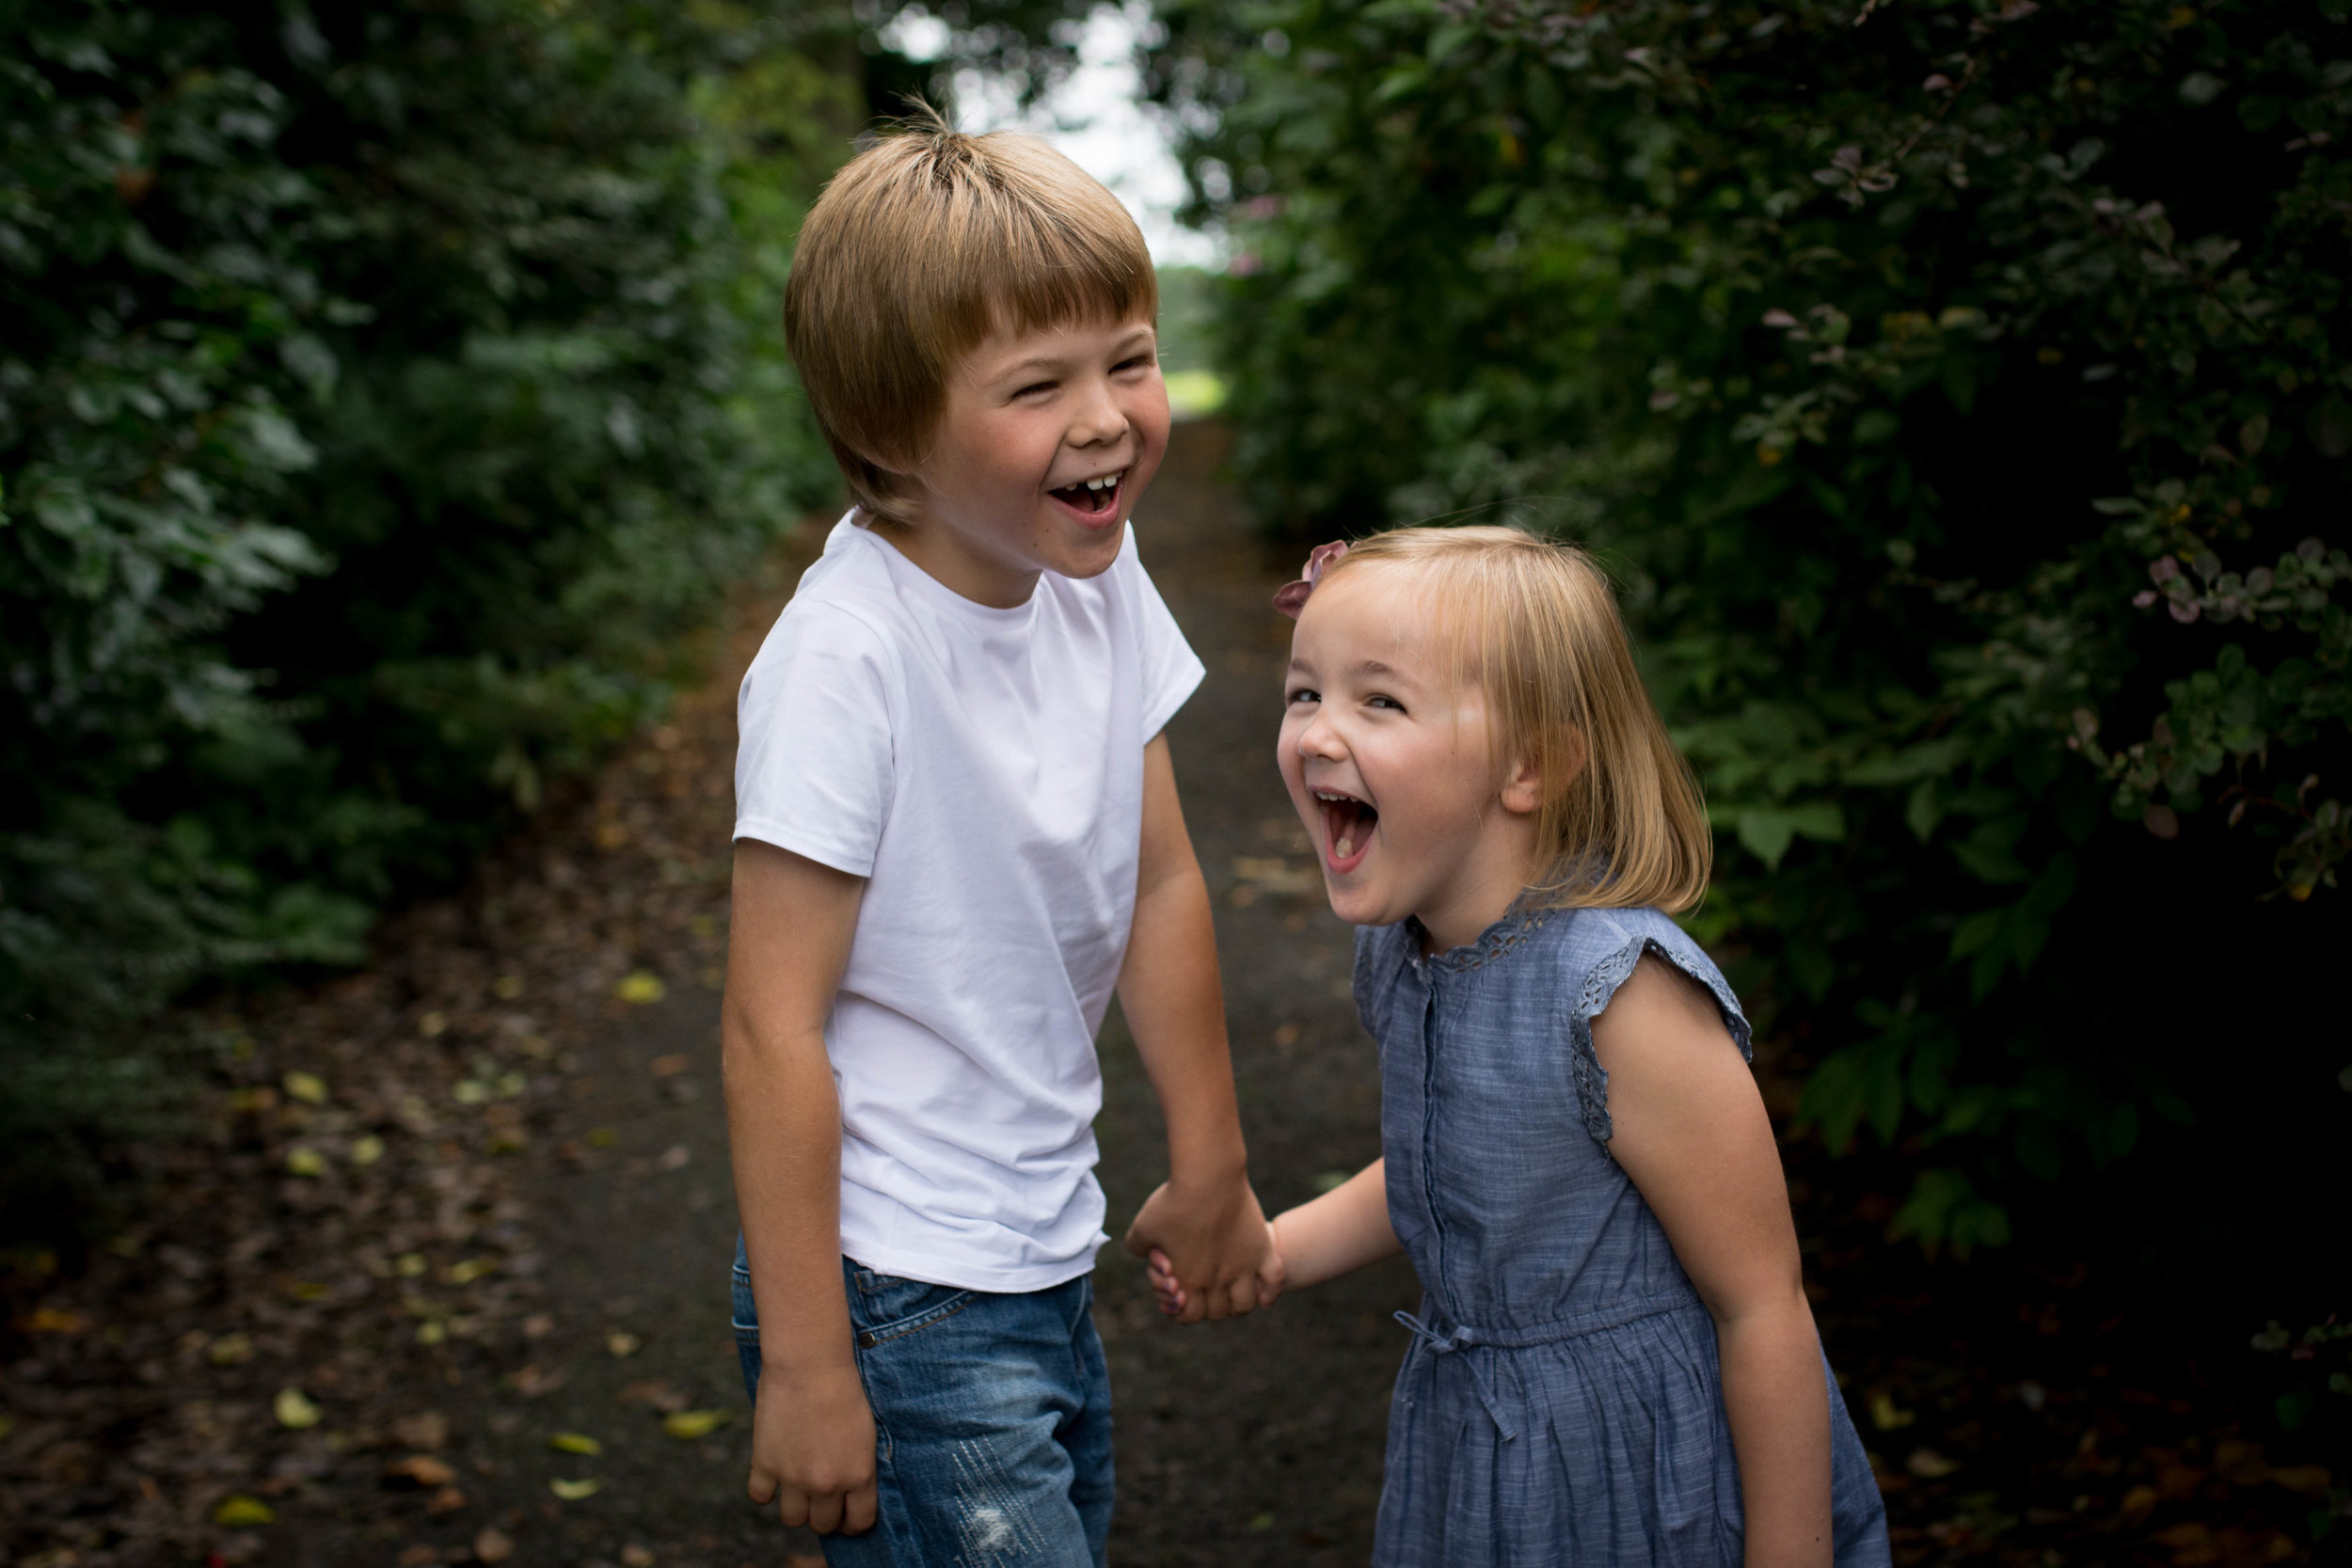 little girl laughing with brother outdoor photo shoot in barshaw park paisley near Glasgow